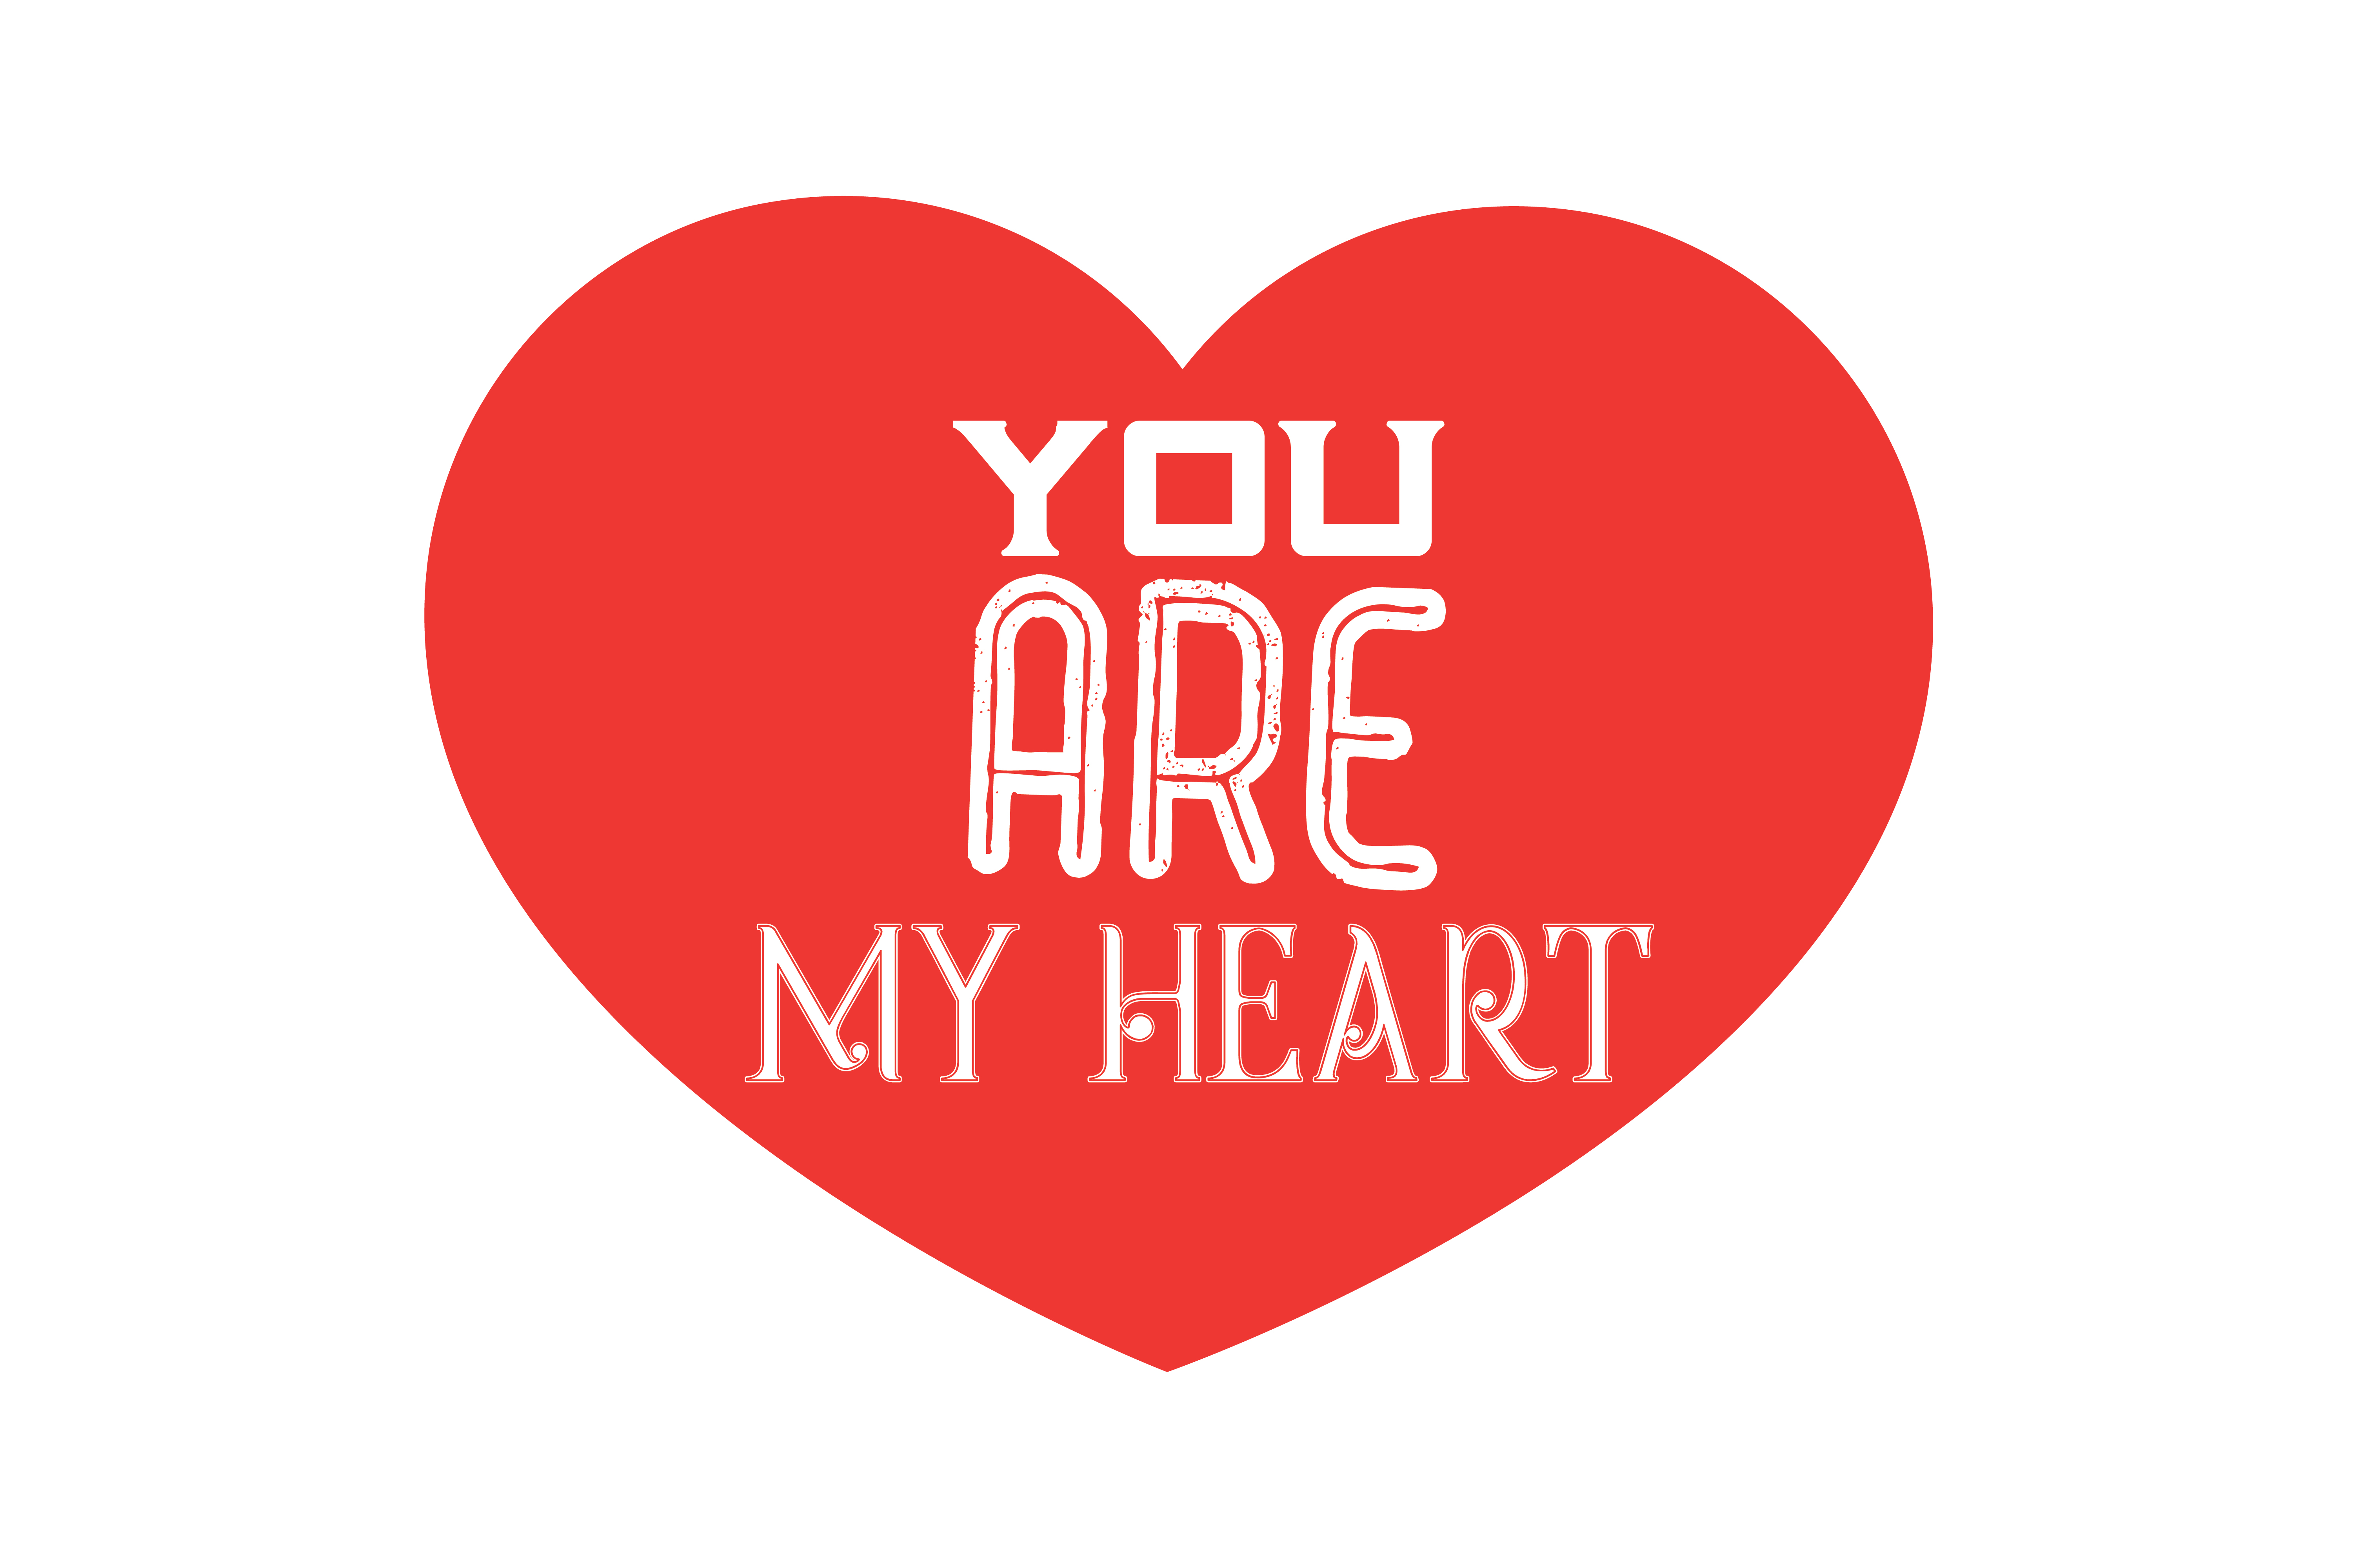 Download Free You Are My Heart Quote Svg Cut Graphic By Thelucky Creative for Cricut Explore, Silhouette and other cutting machines.